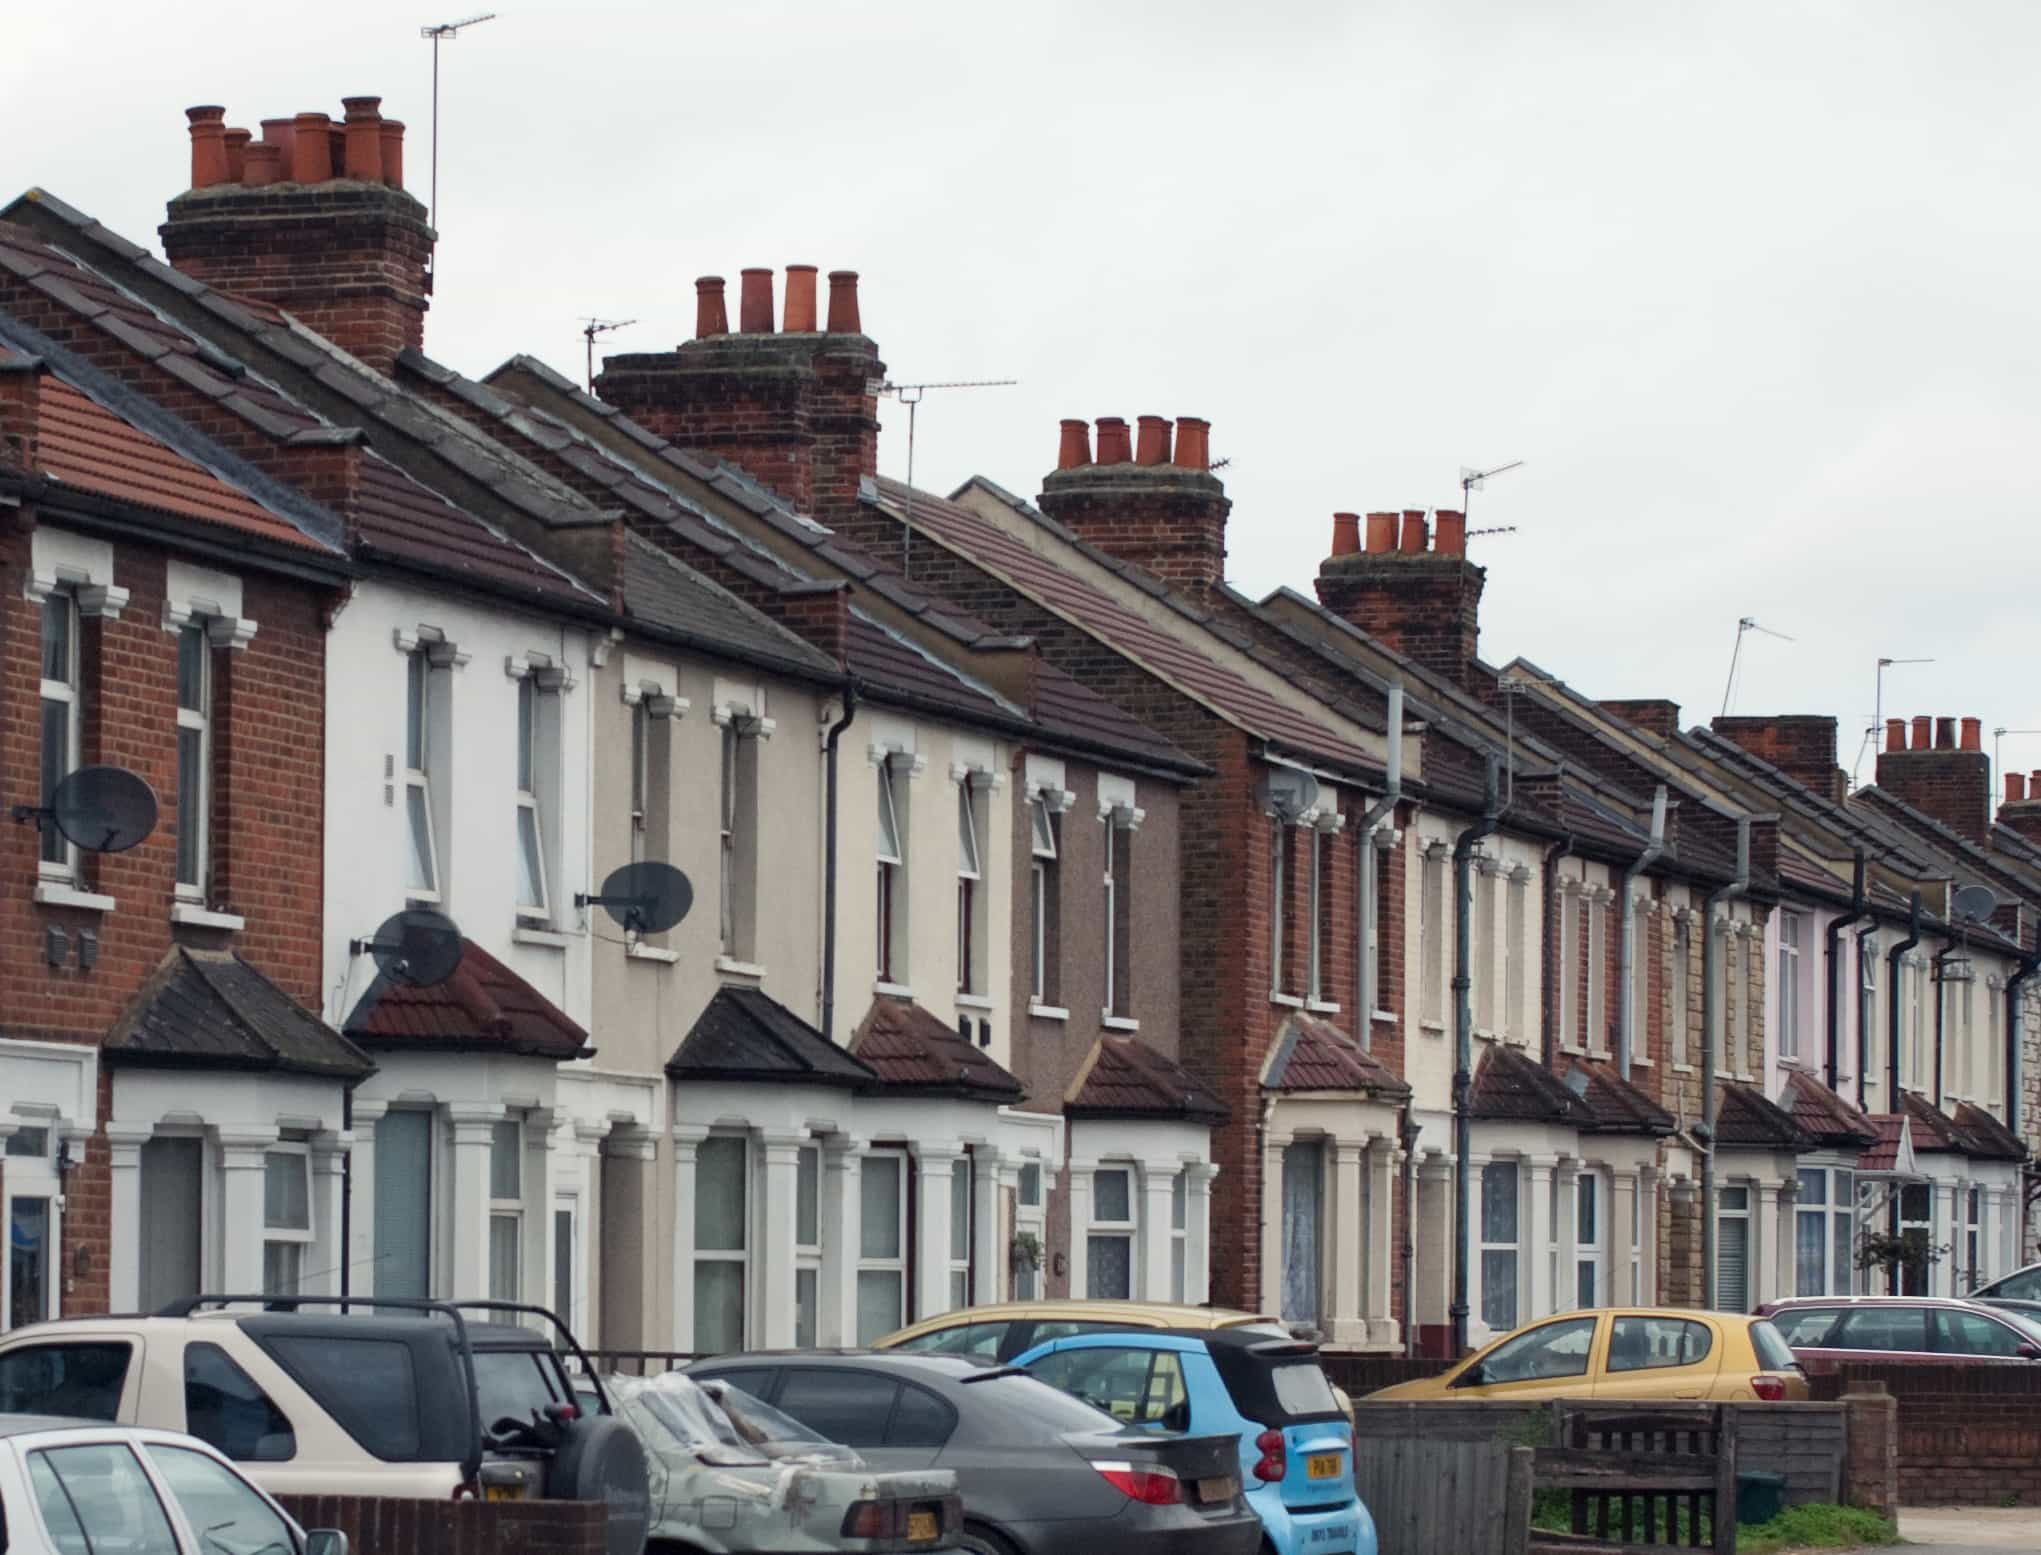 Terraced houses